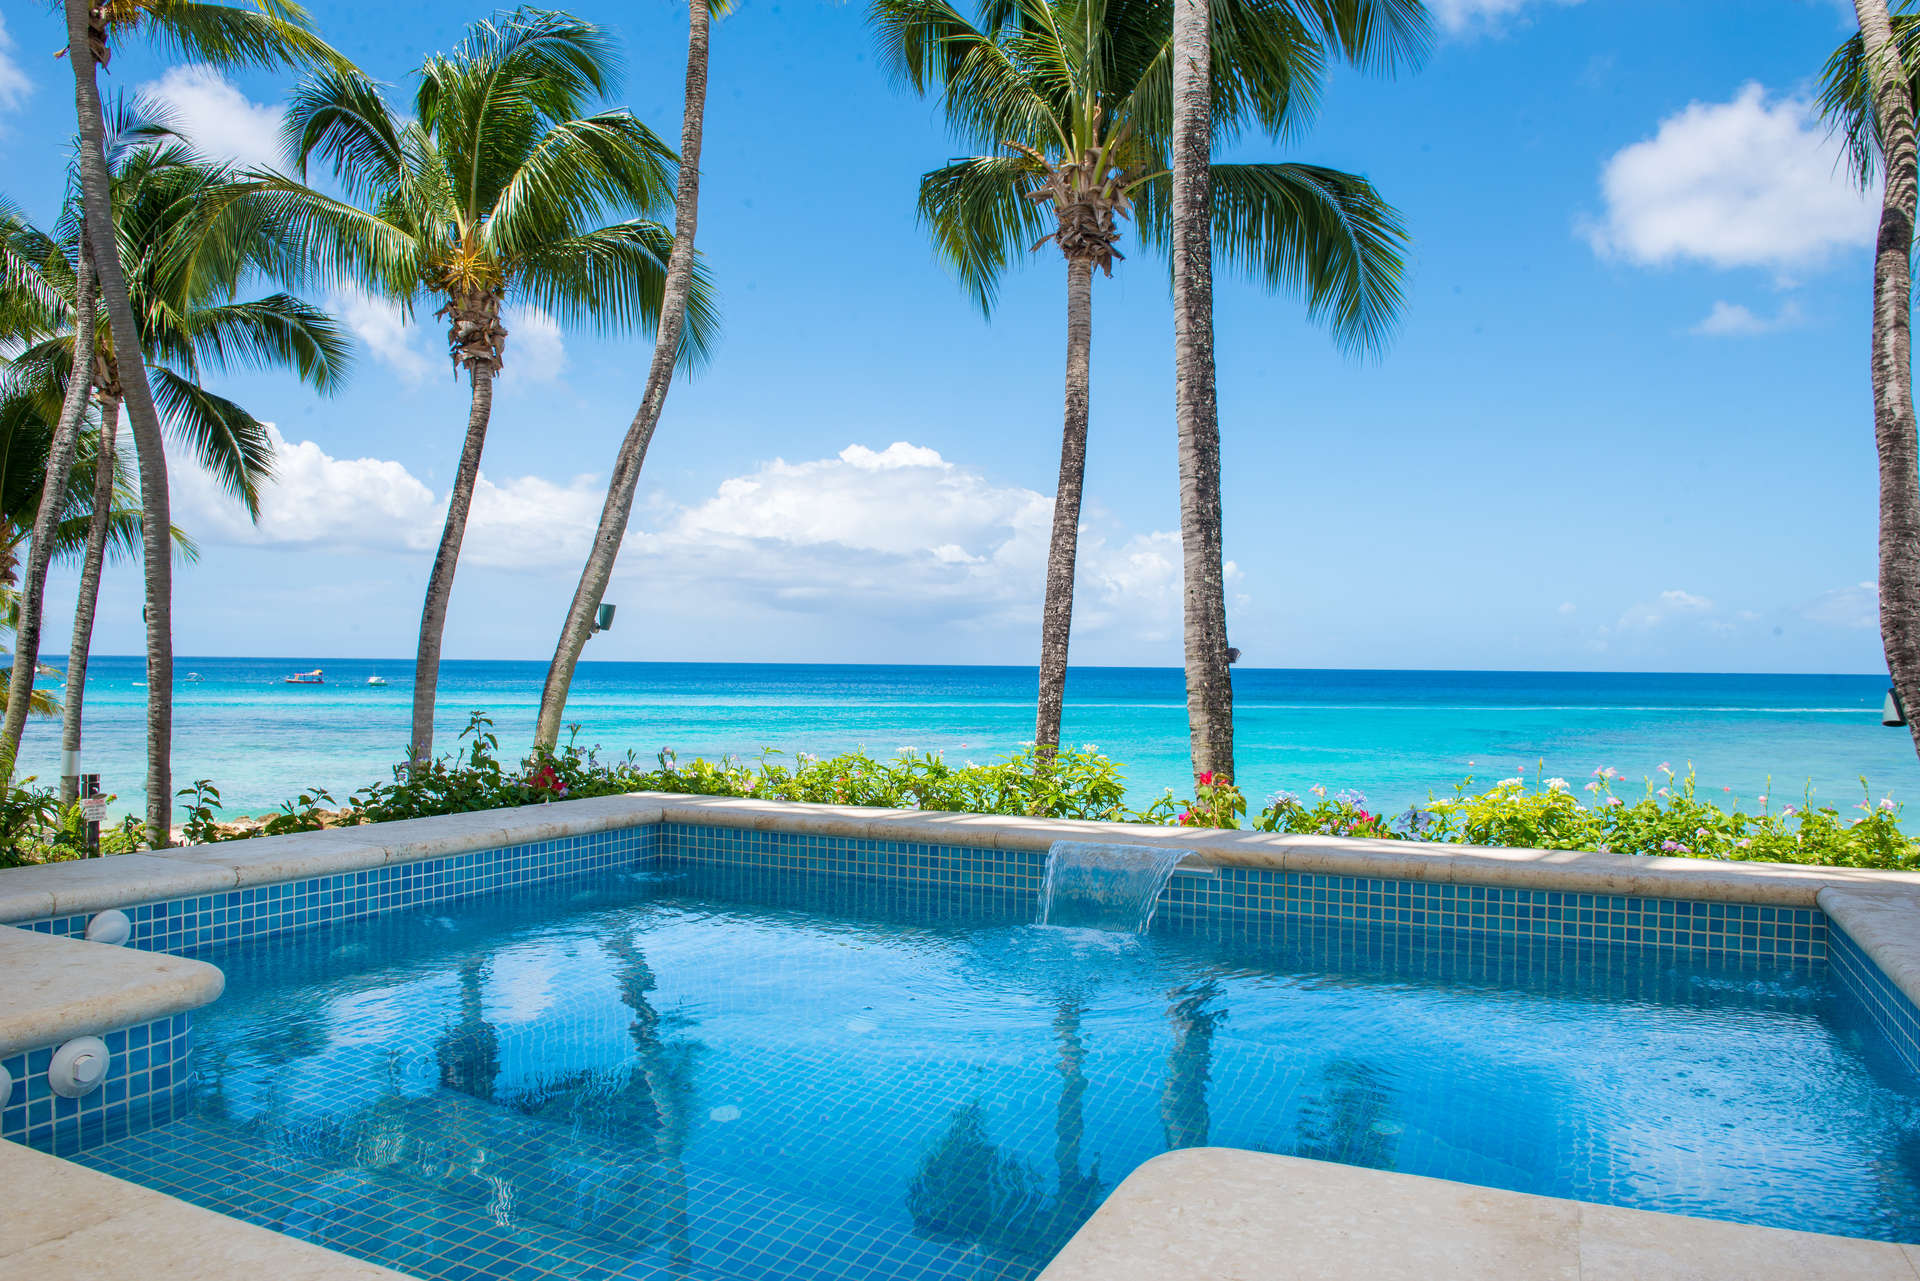 Luxury villa rentals caribbean - Barbados - St james - Reeds bay - Reeds House 9 - Image 1/9